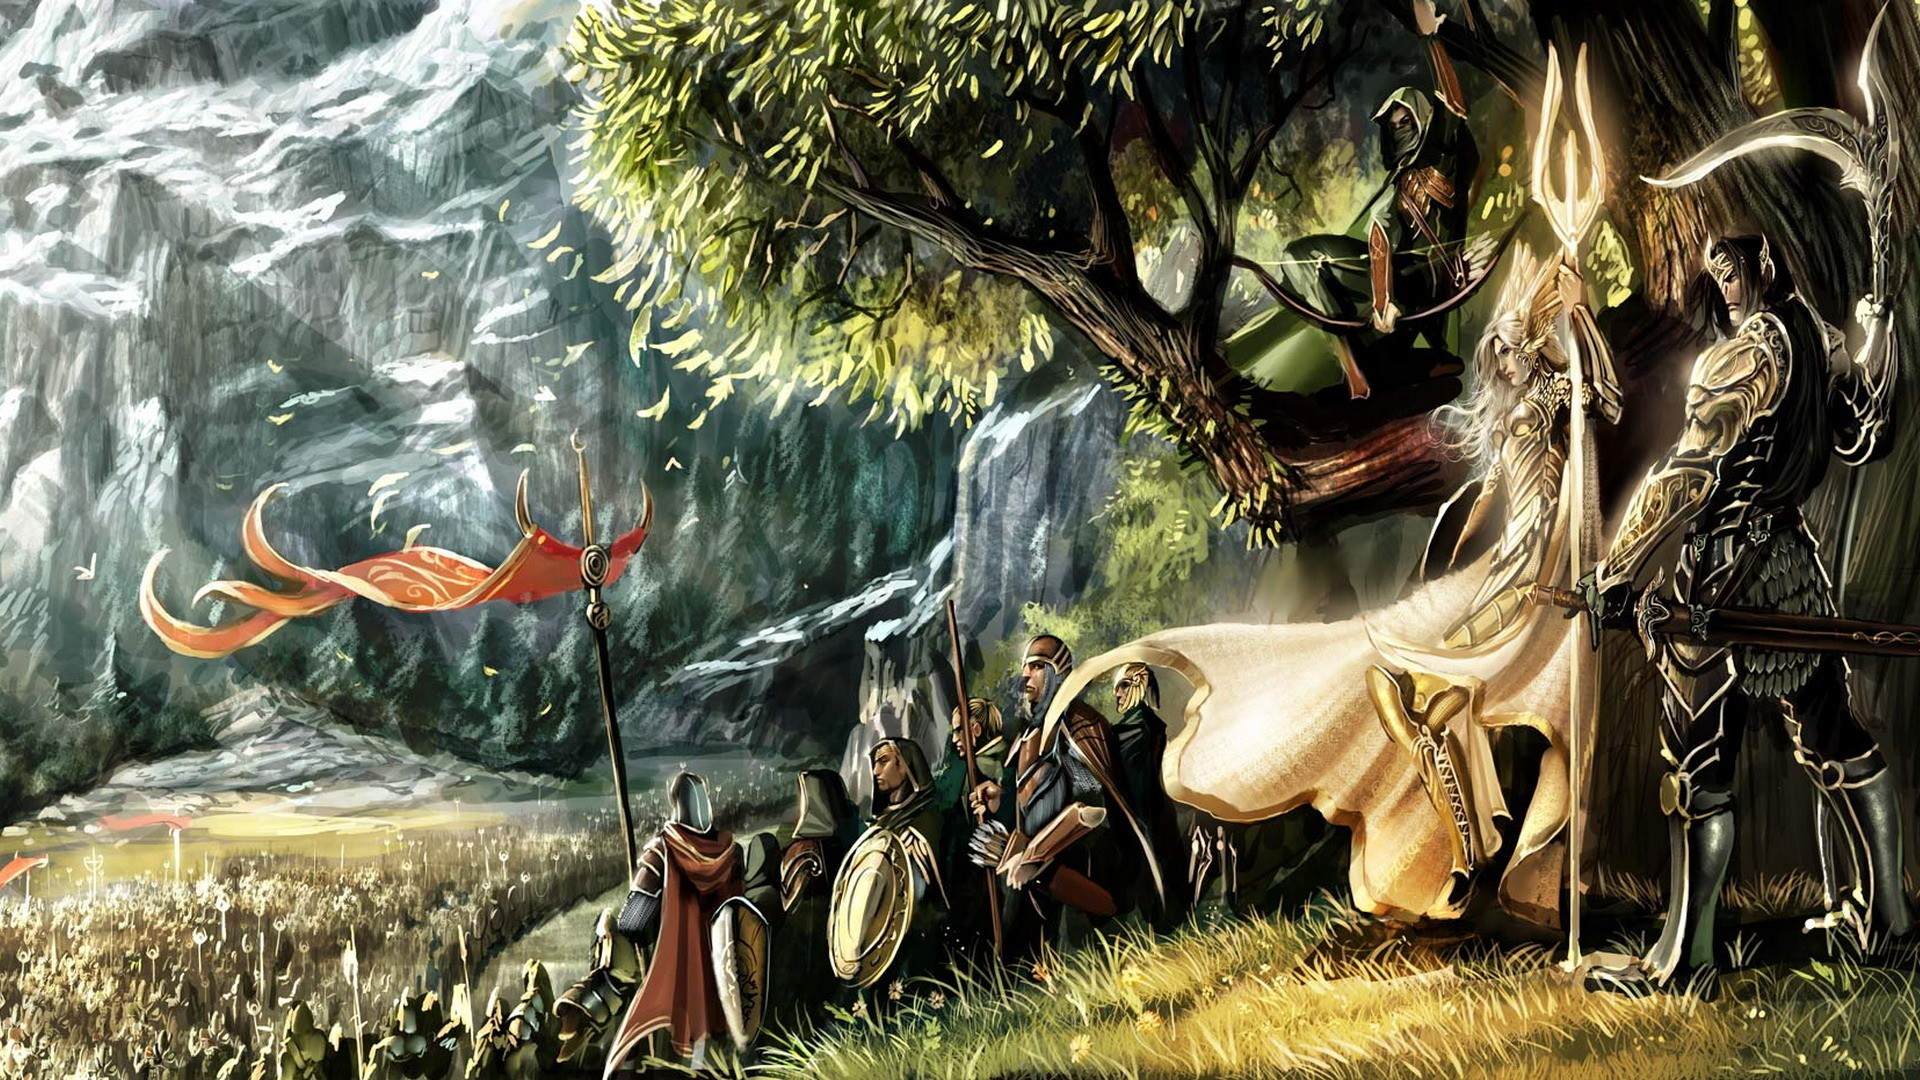 The Lord Wallpaper 1920x1080 The Lord Of The Rings Artwork 1920x1080